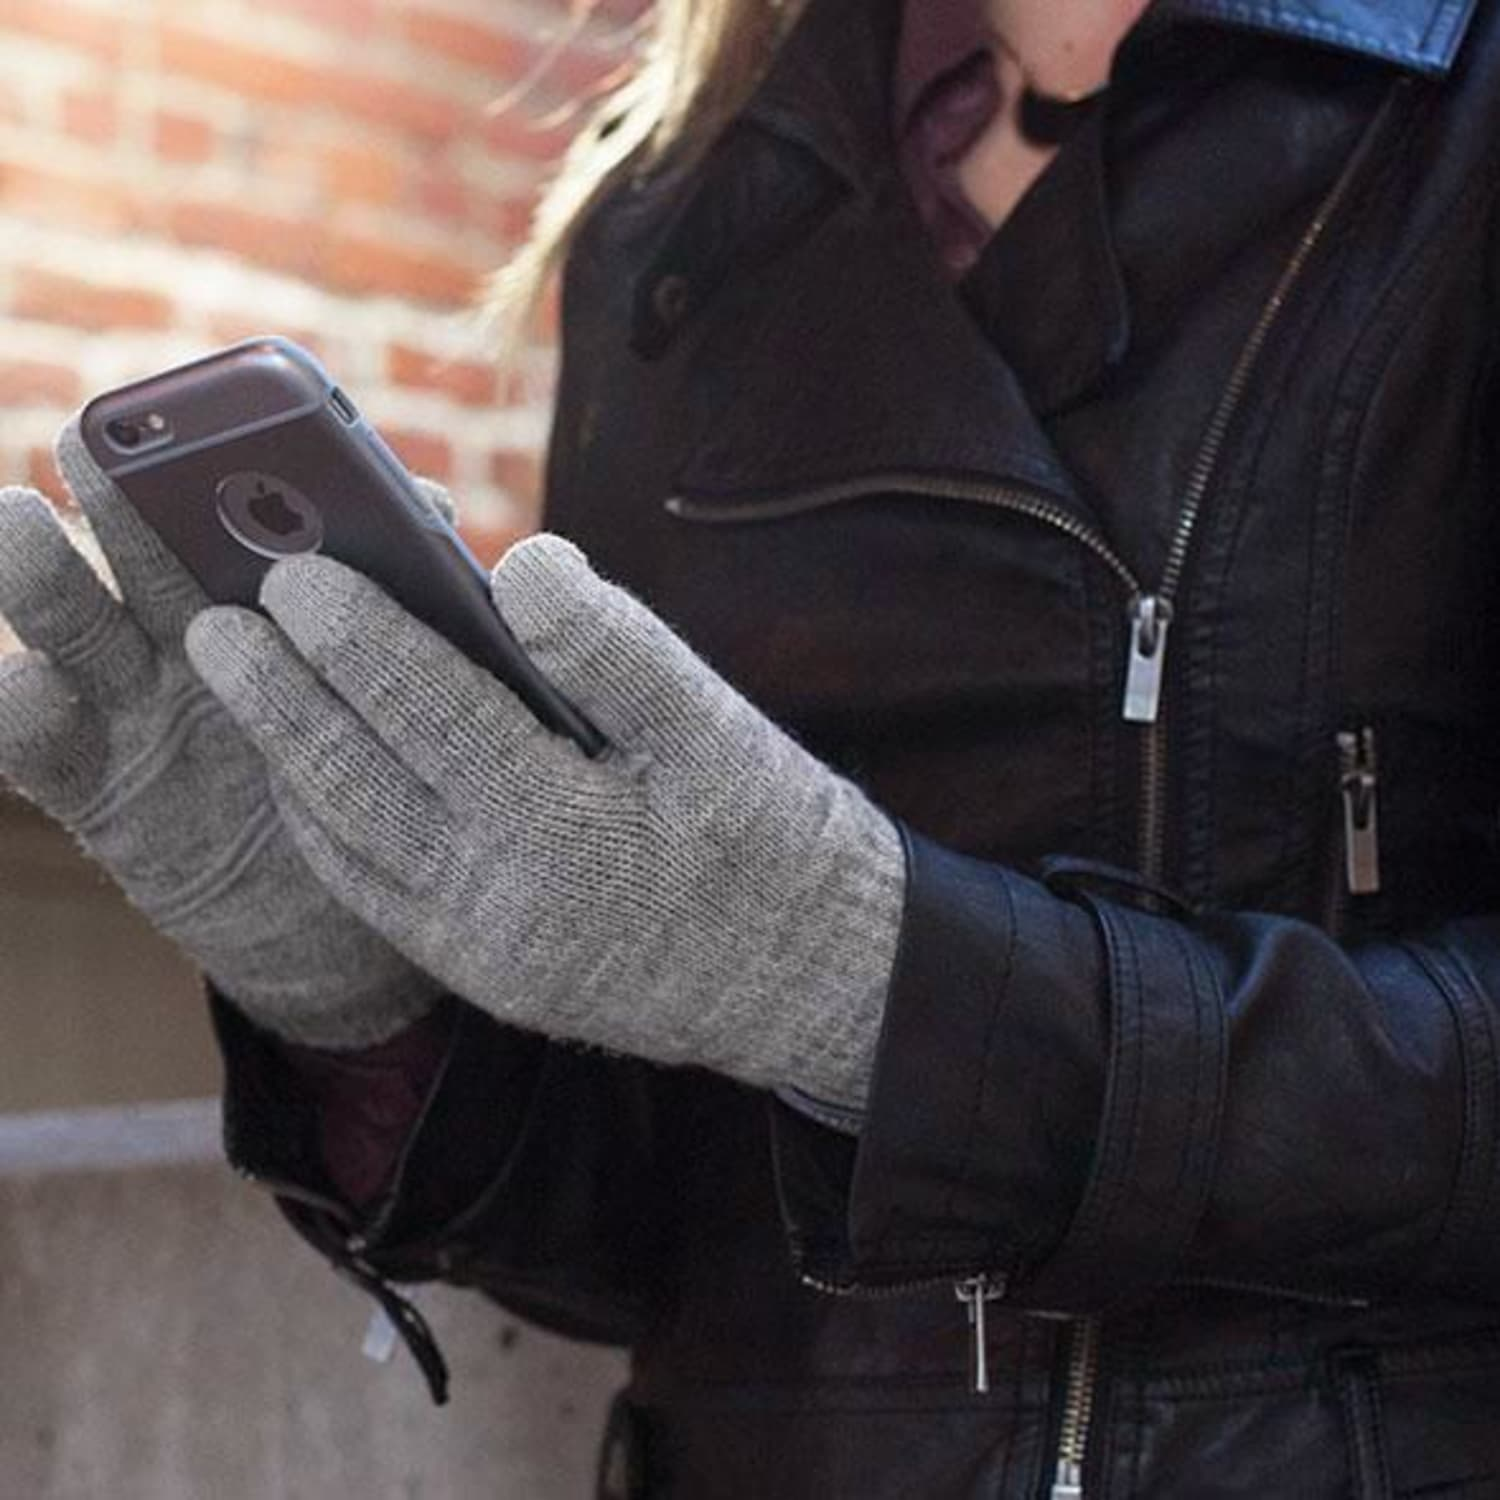 6a078bfe5 The Best Touchscreen-Compatible Gloves | Apartment Therapy